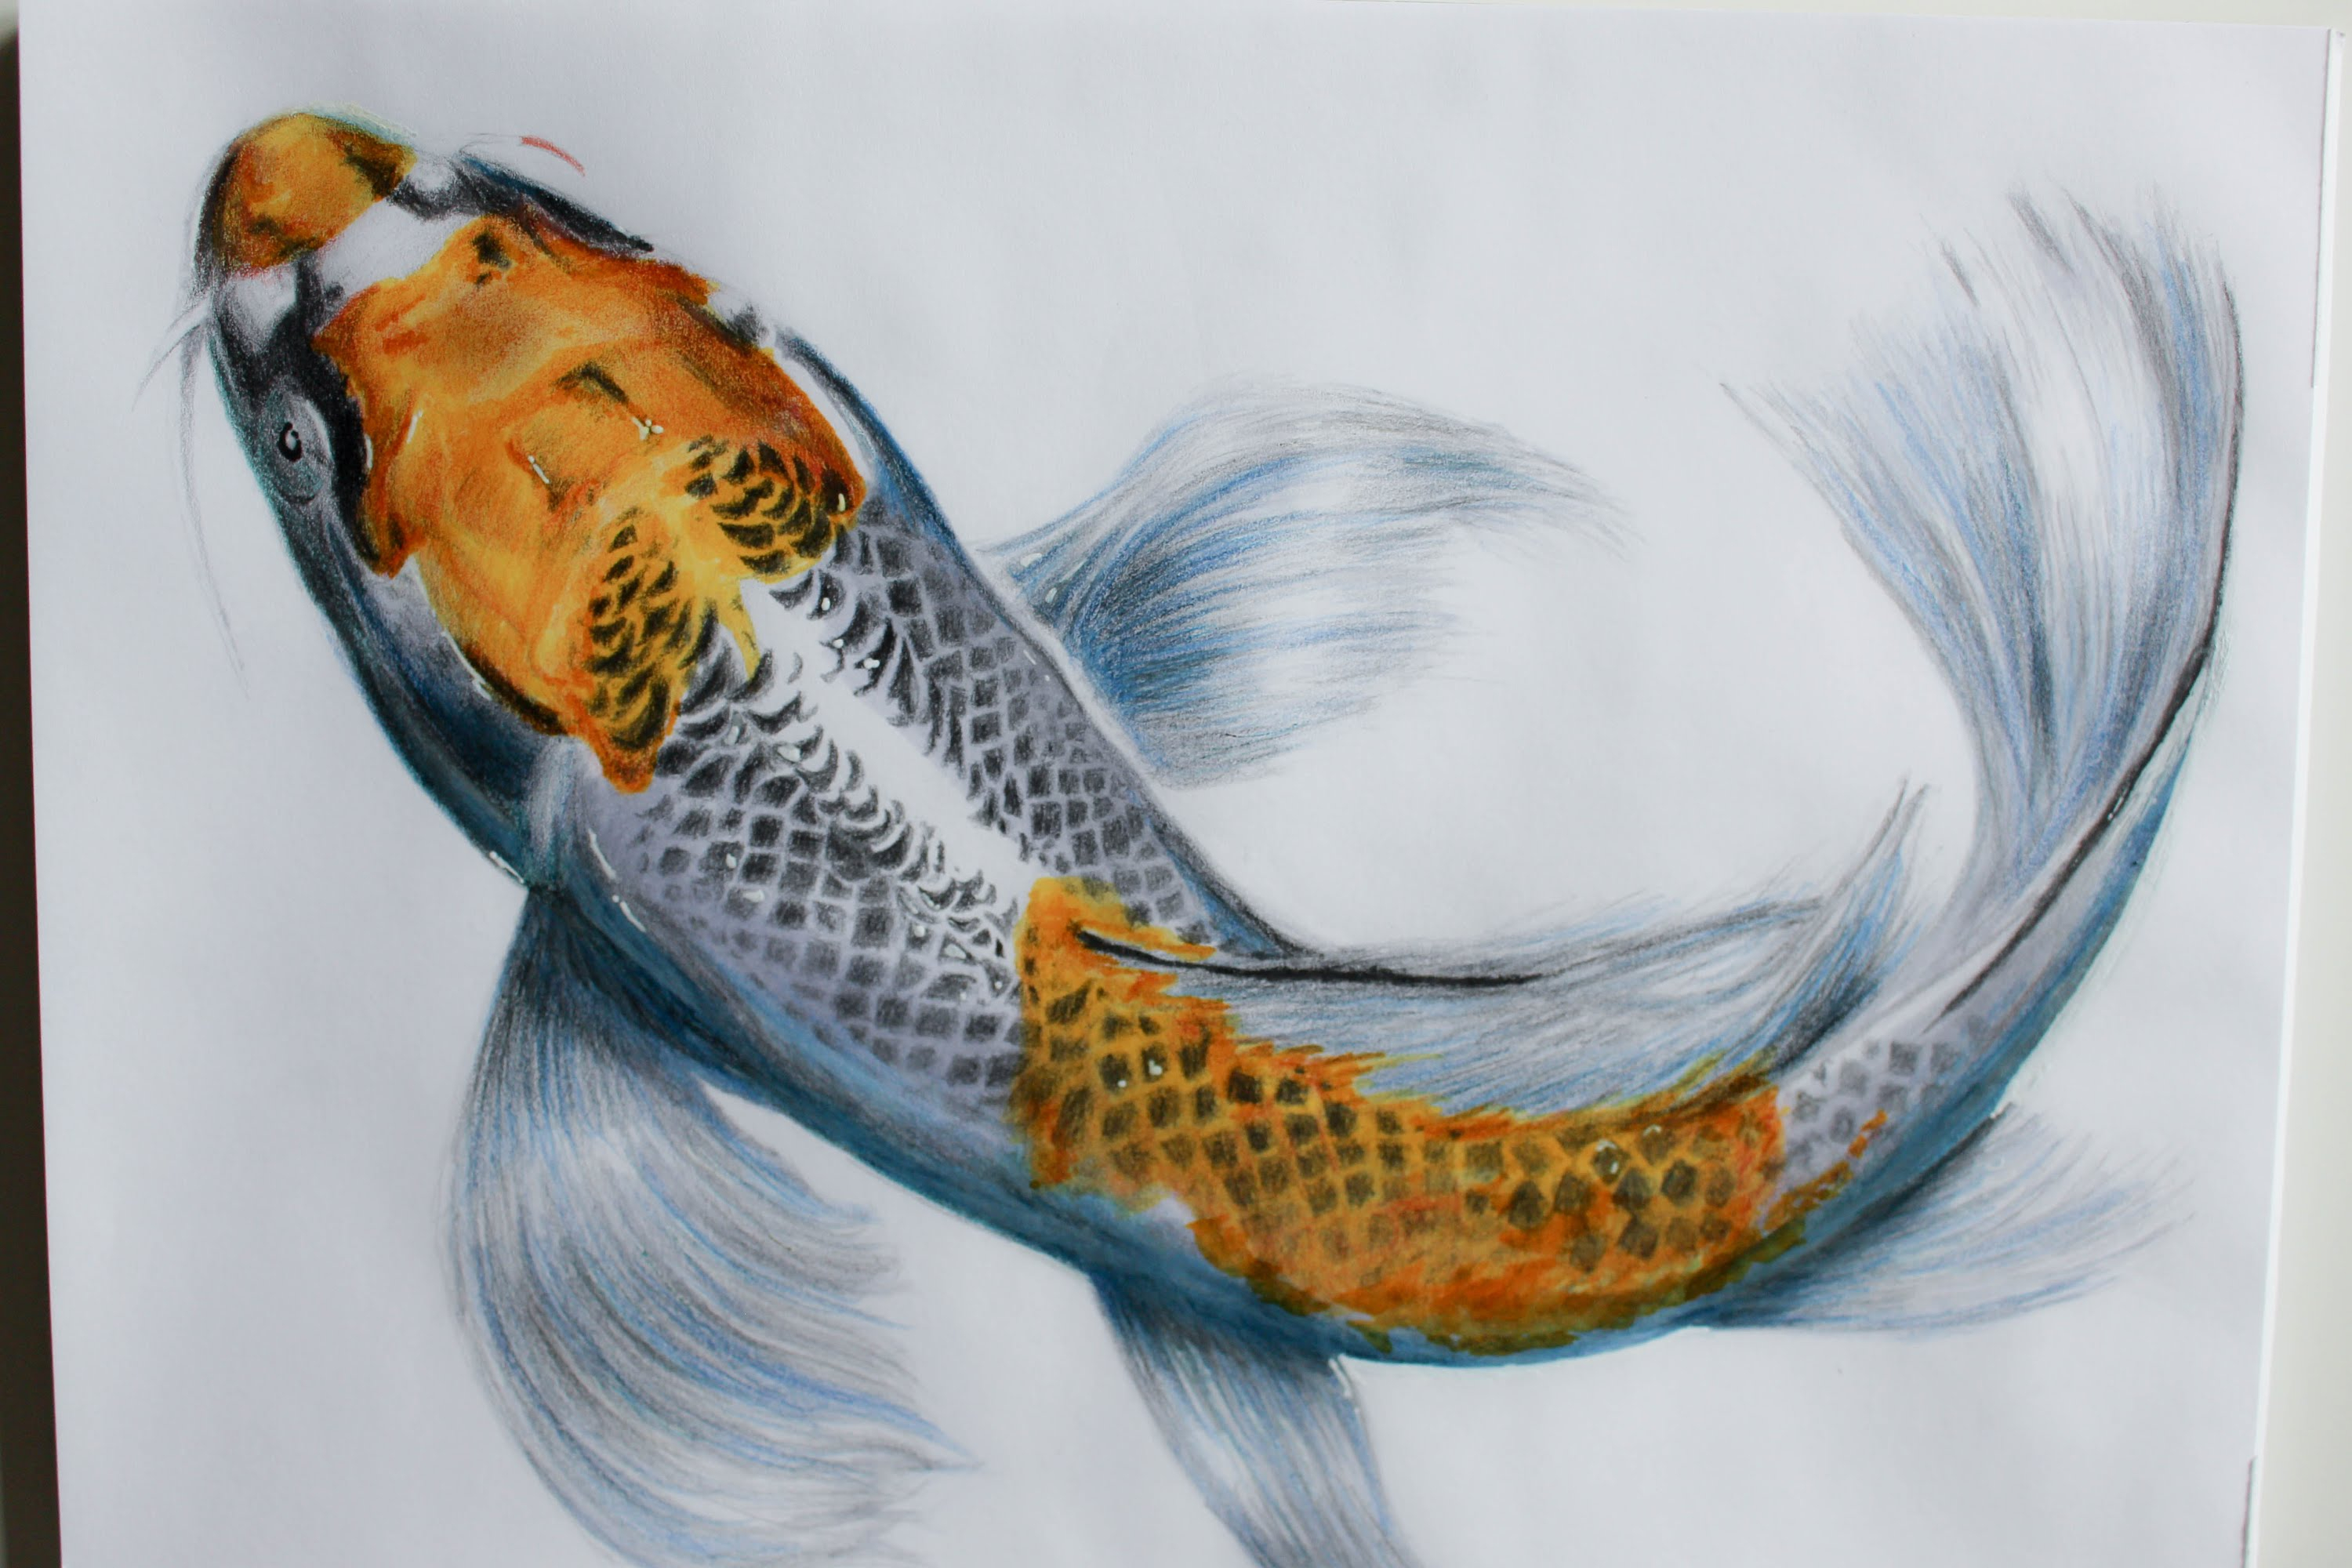 It is an image of Irresistible Realistic Fish Drawing